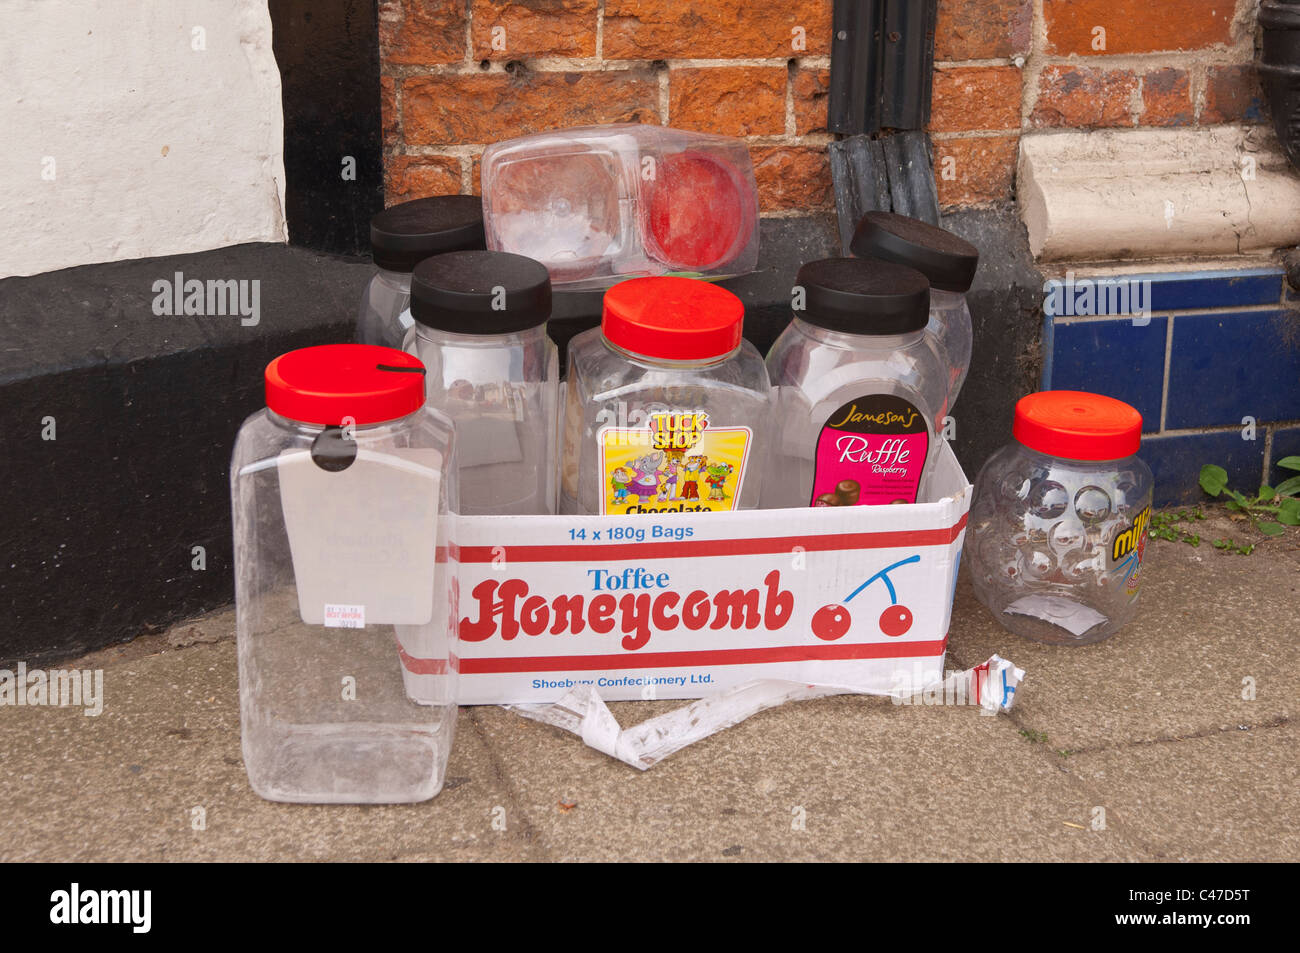 Old sweet jars being given away outside a Uk sweet shop - Stock Image